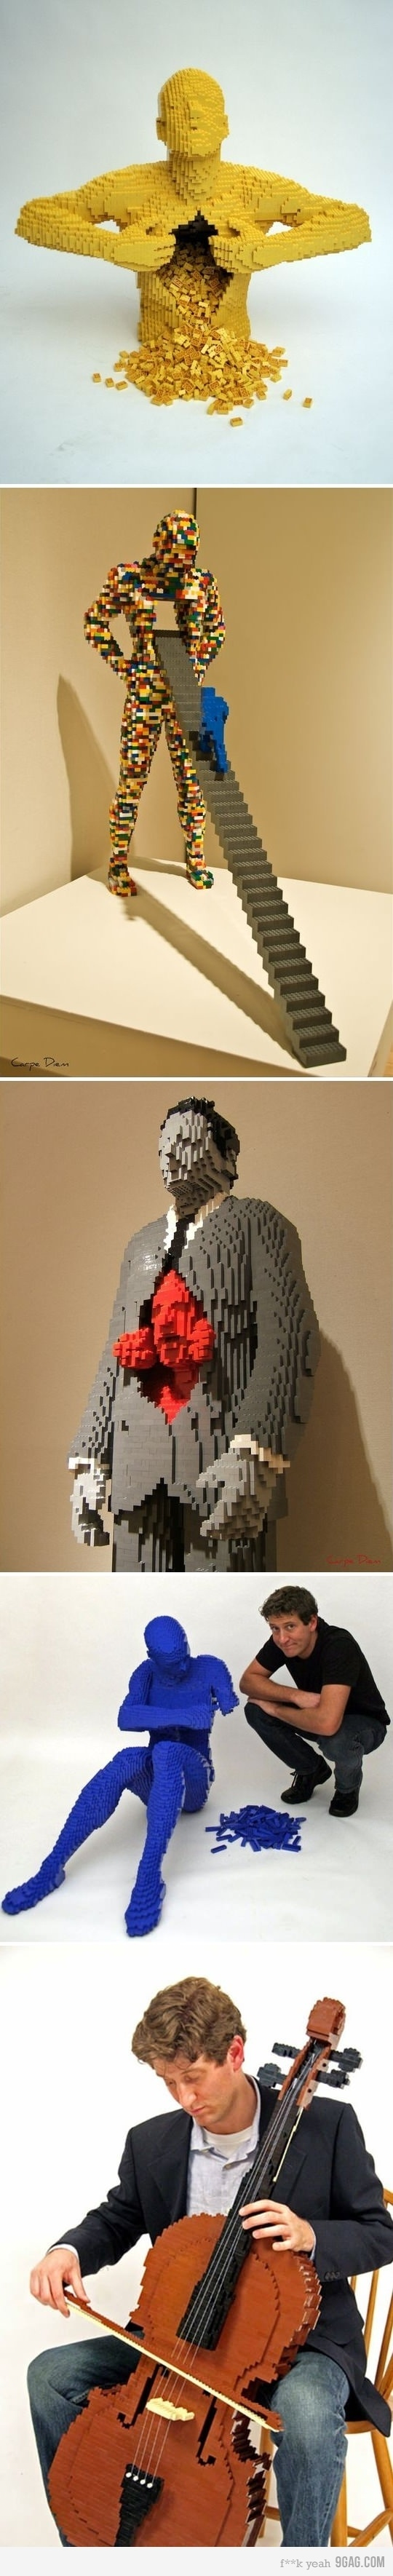 1000+ images about Lego stuff that is awesome on Pinterest